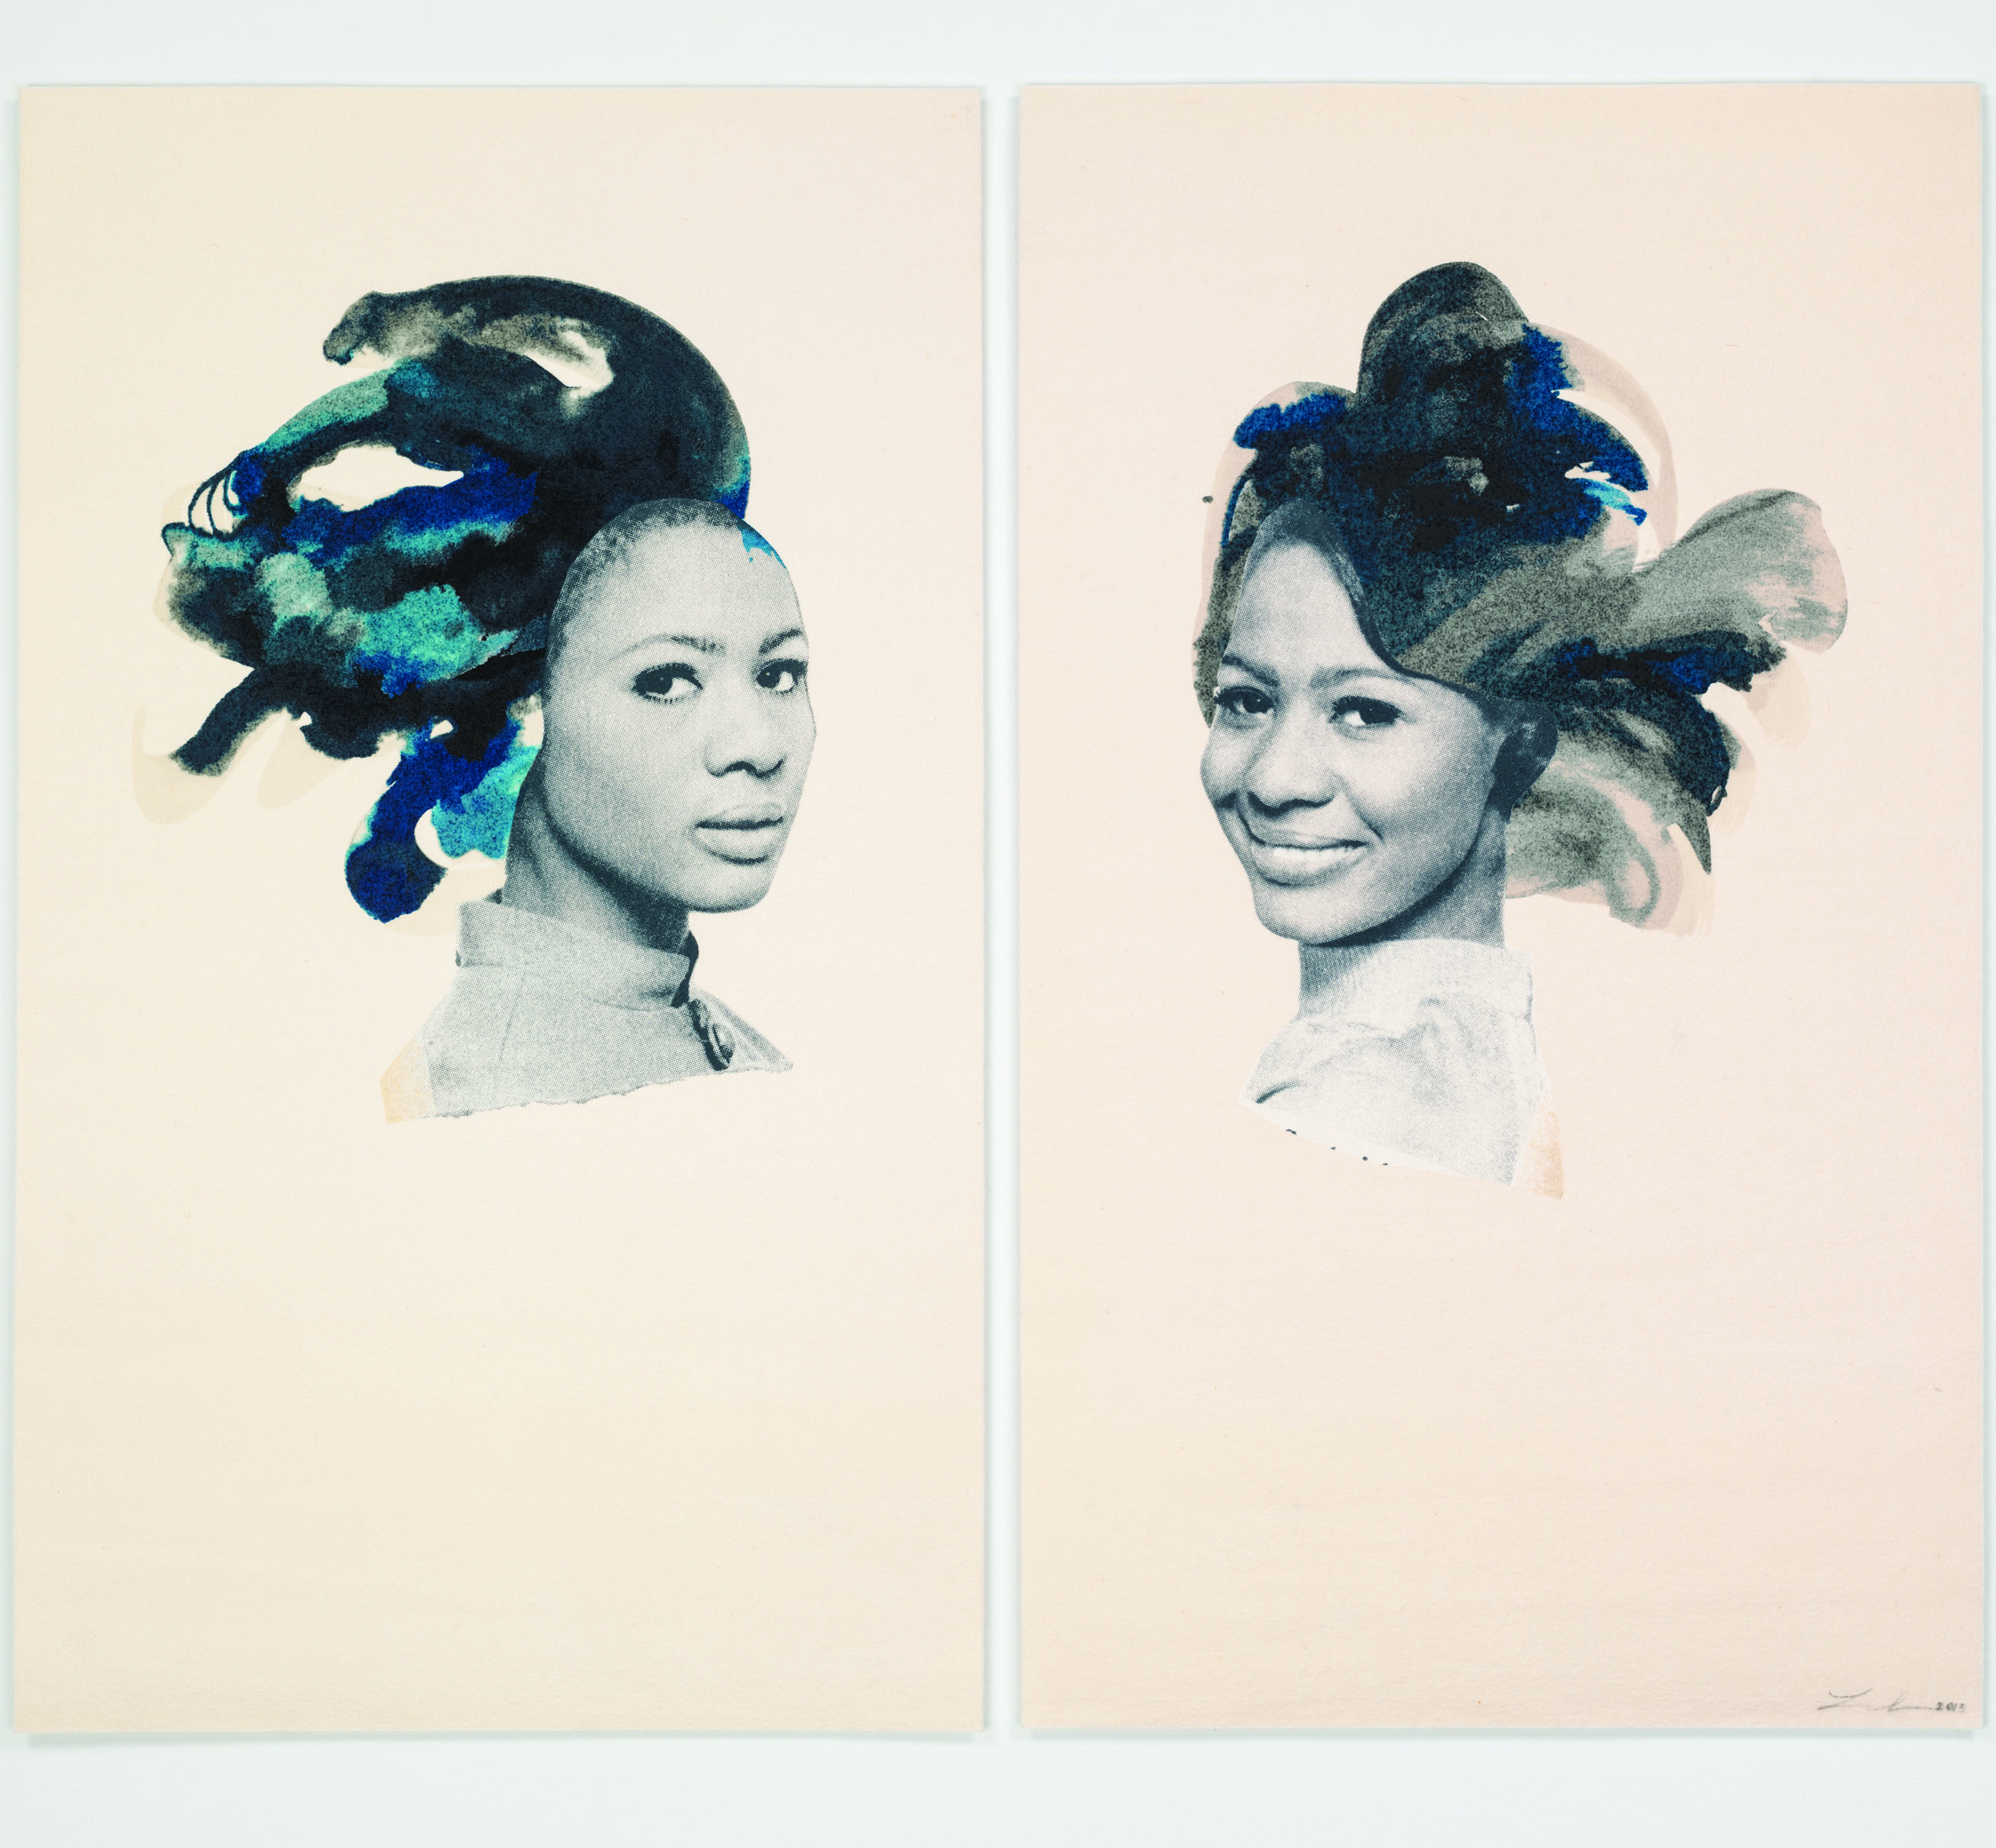 Lorna Simpson, Double Portrait, 2015, collage and ink on paper, 22.1 x 28.4 cm Courtesy Salon 94 and the artist